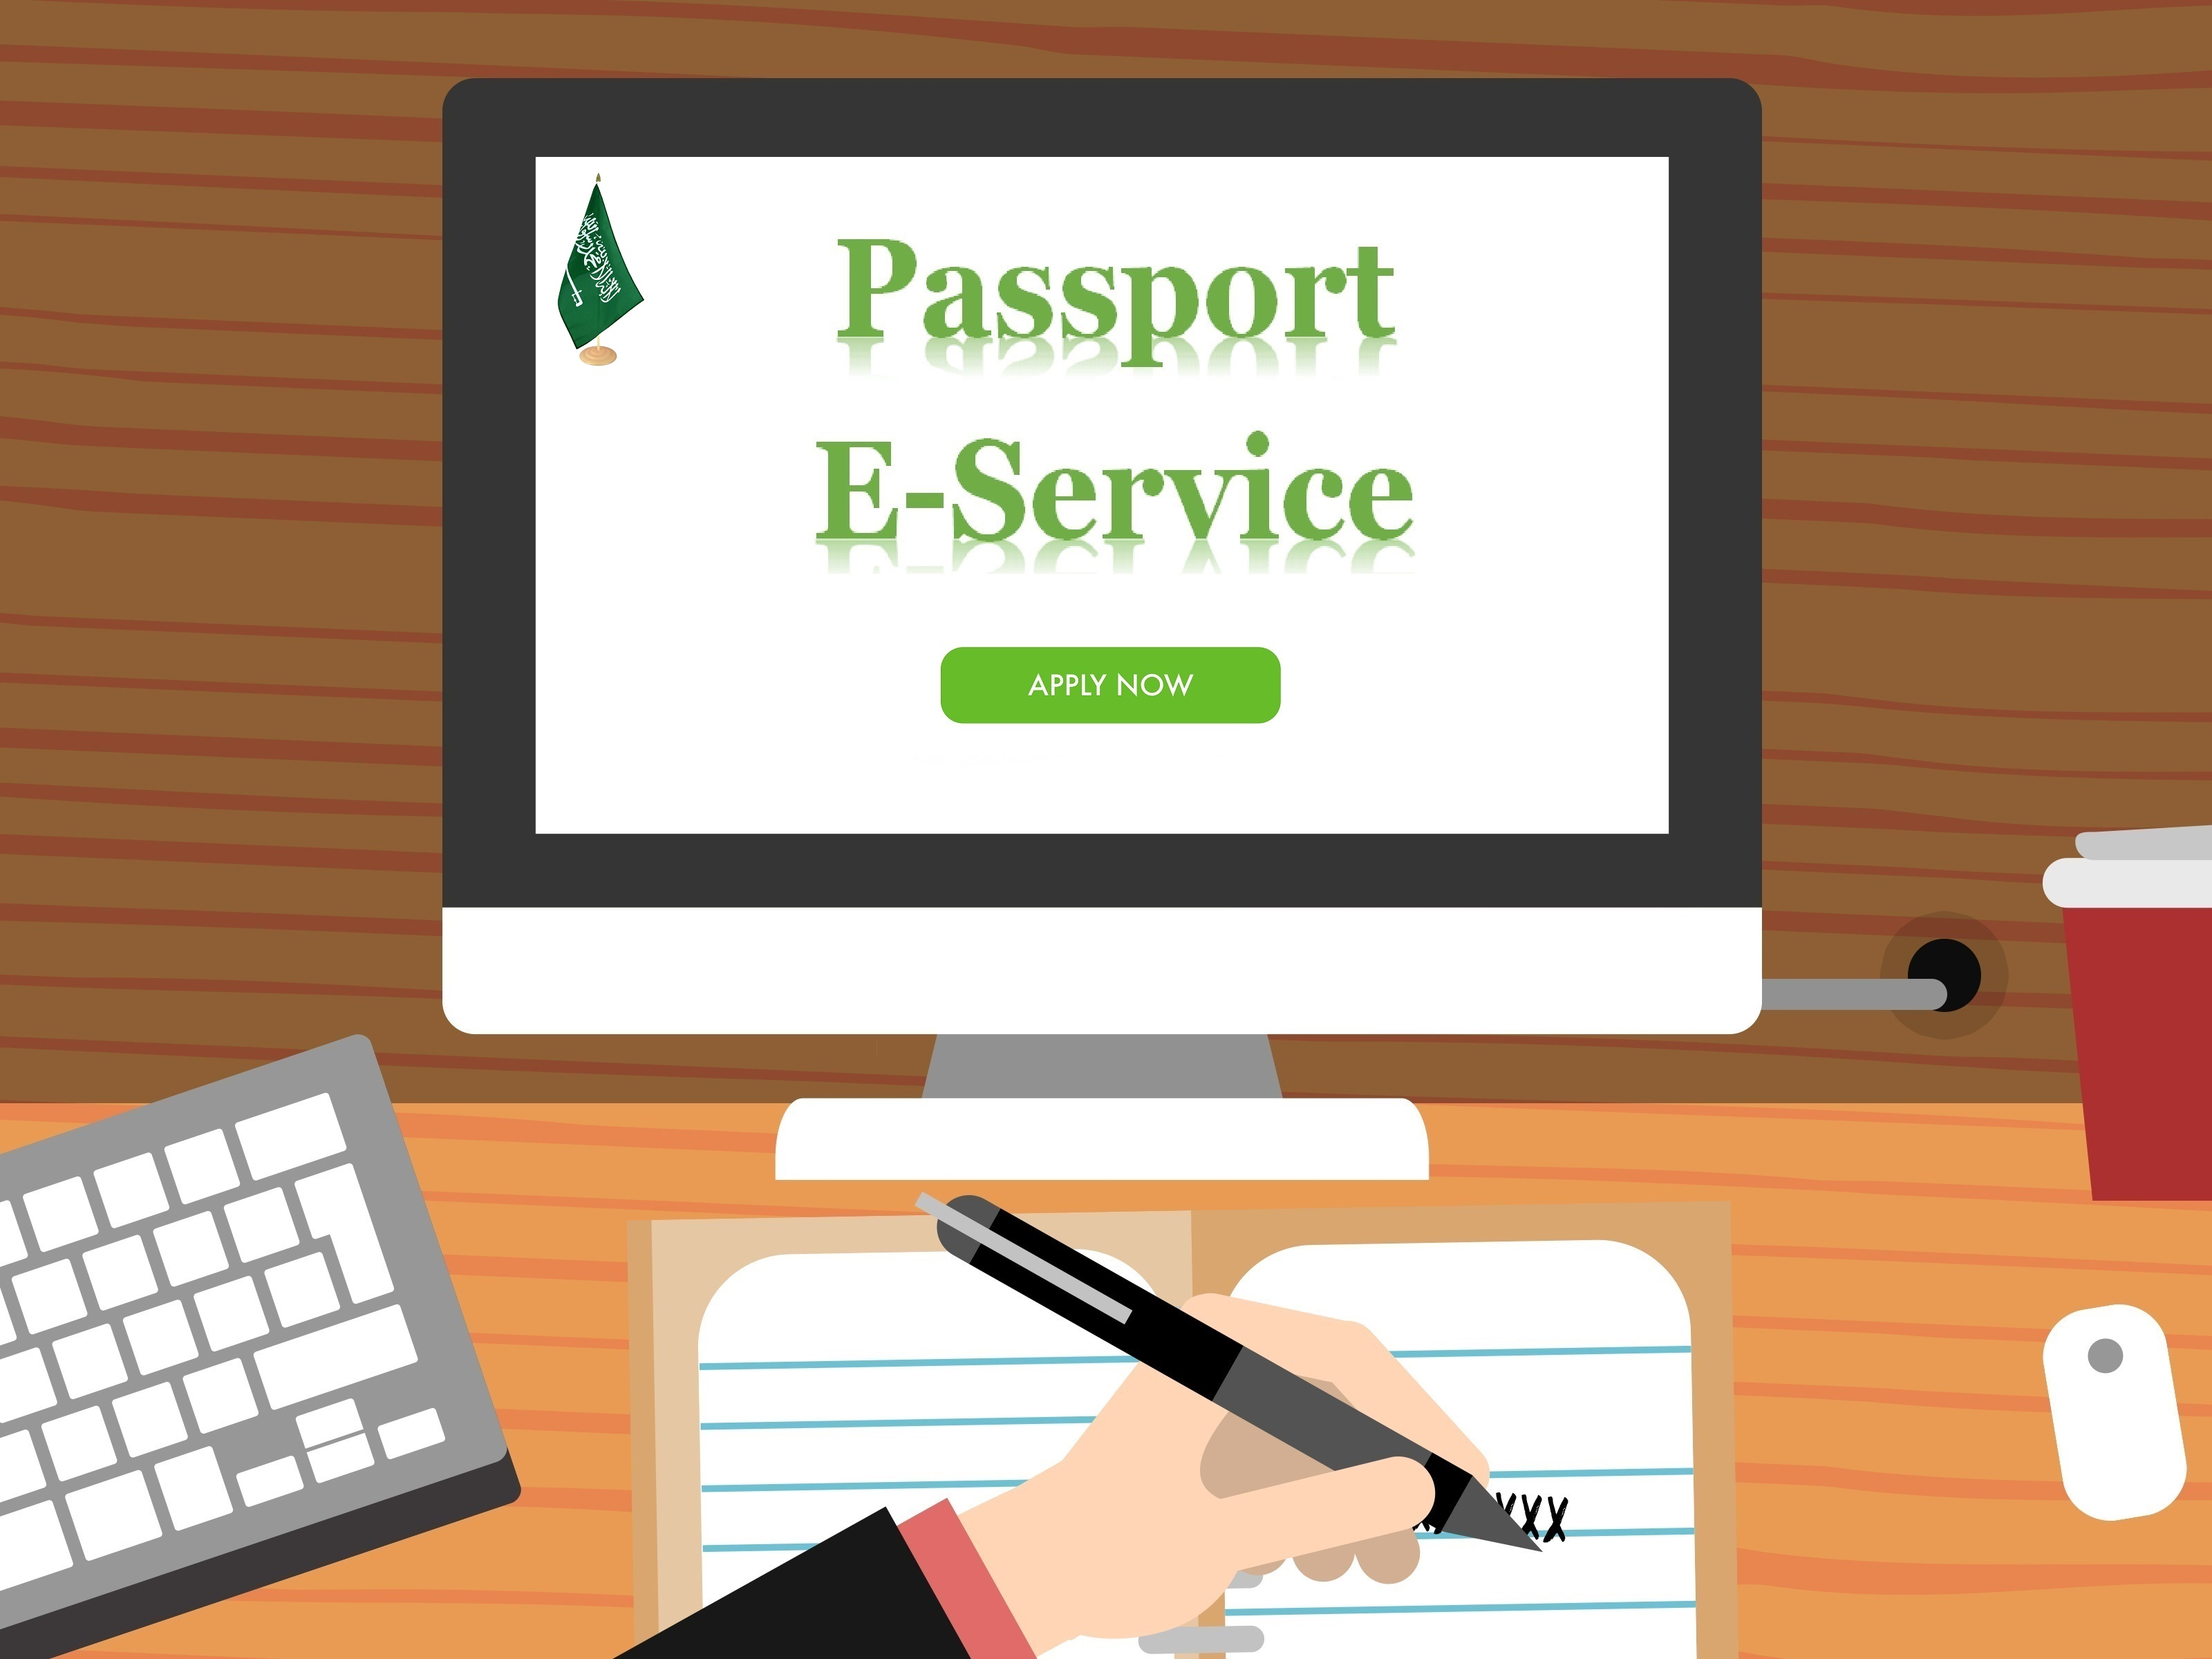 Kingdom launches passports E-service in KSA